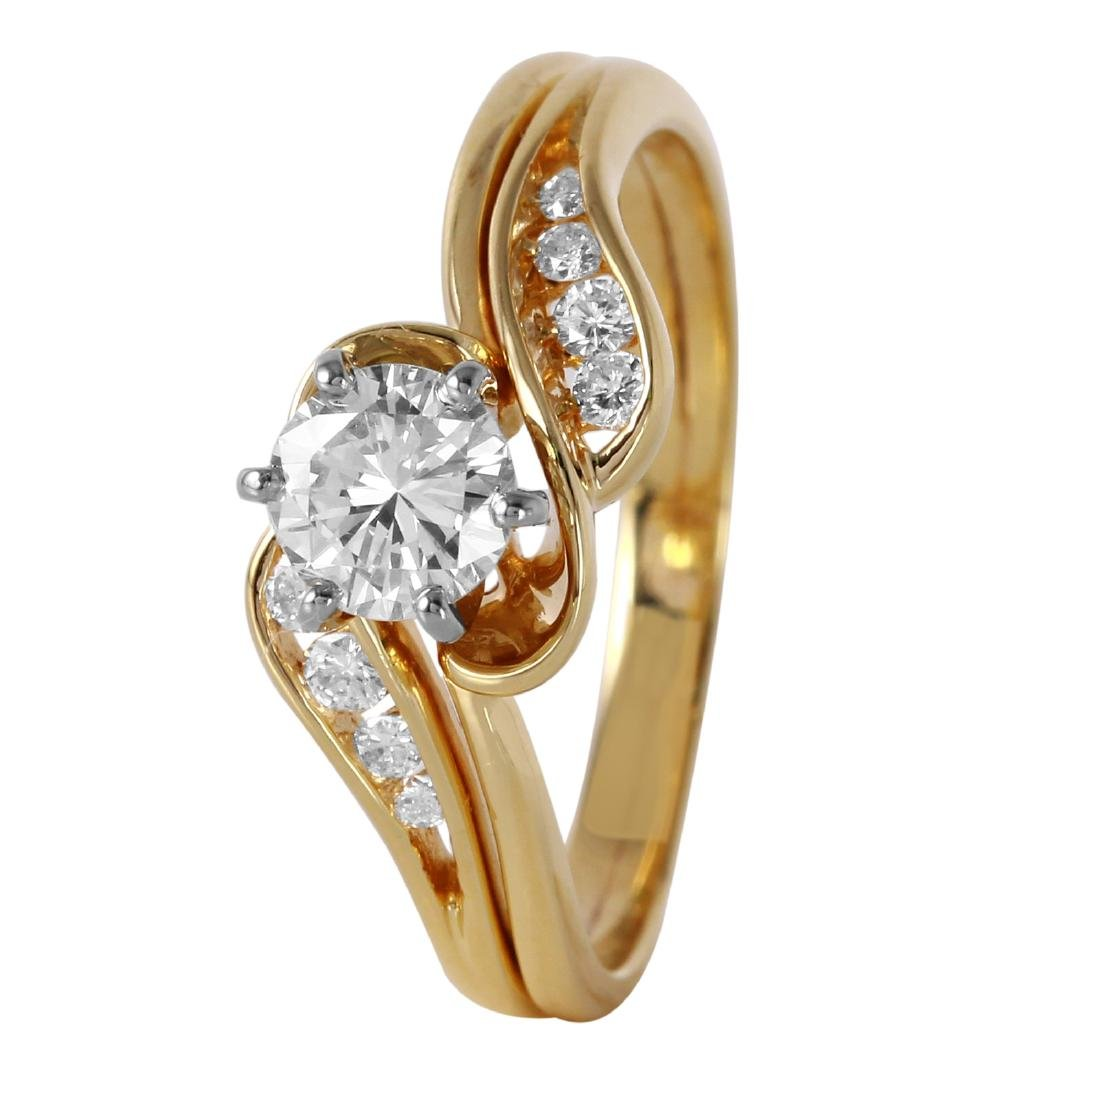 14KT Yellow Gold 0.55ctw Solitaire Diamond Engagement